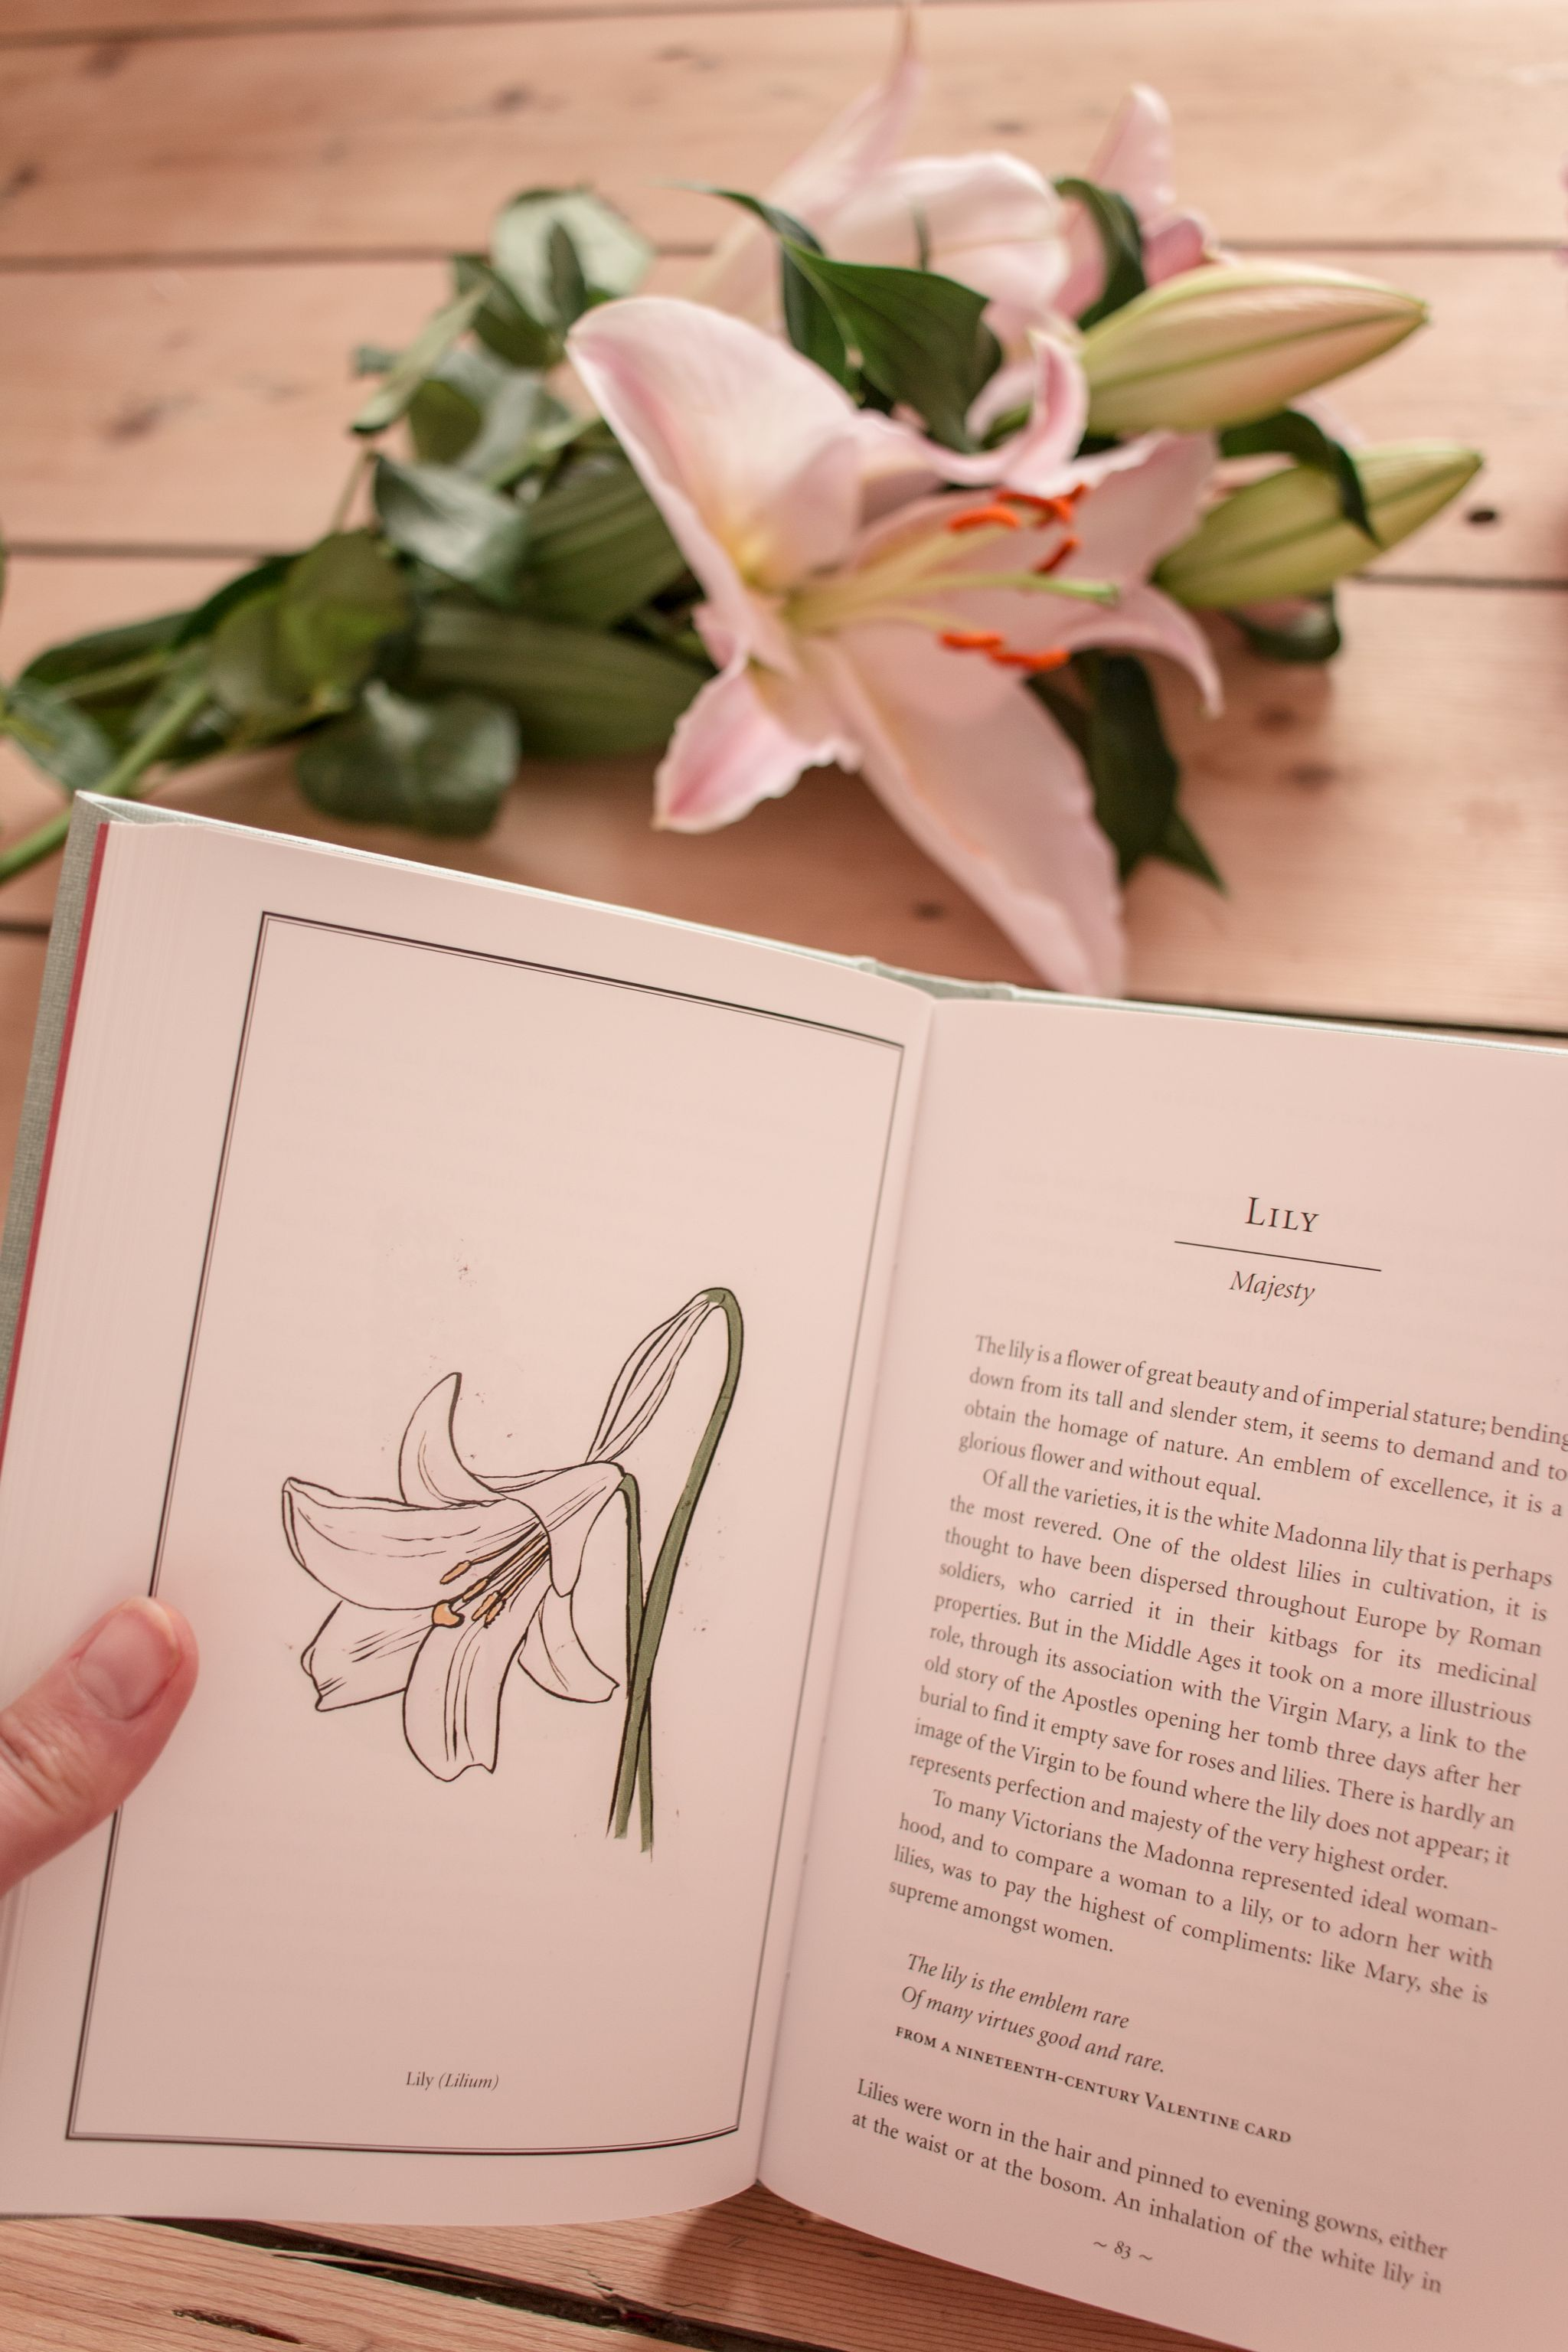 meaning-behind-lily-flower